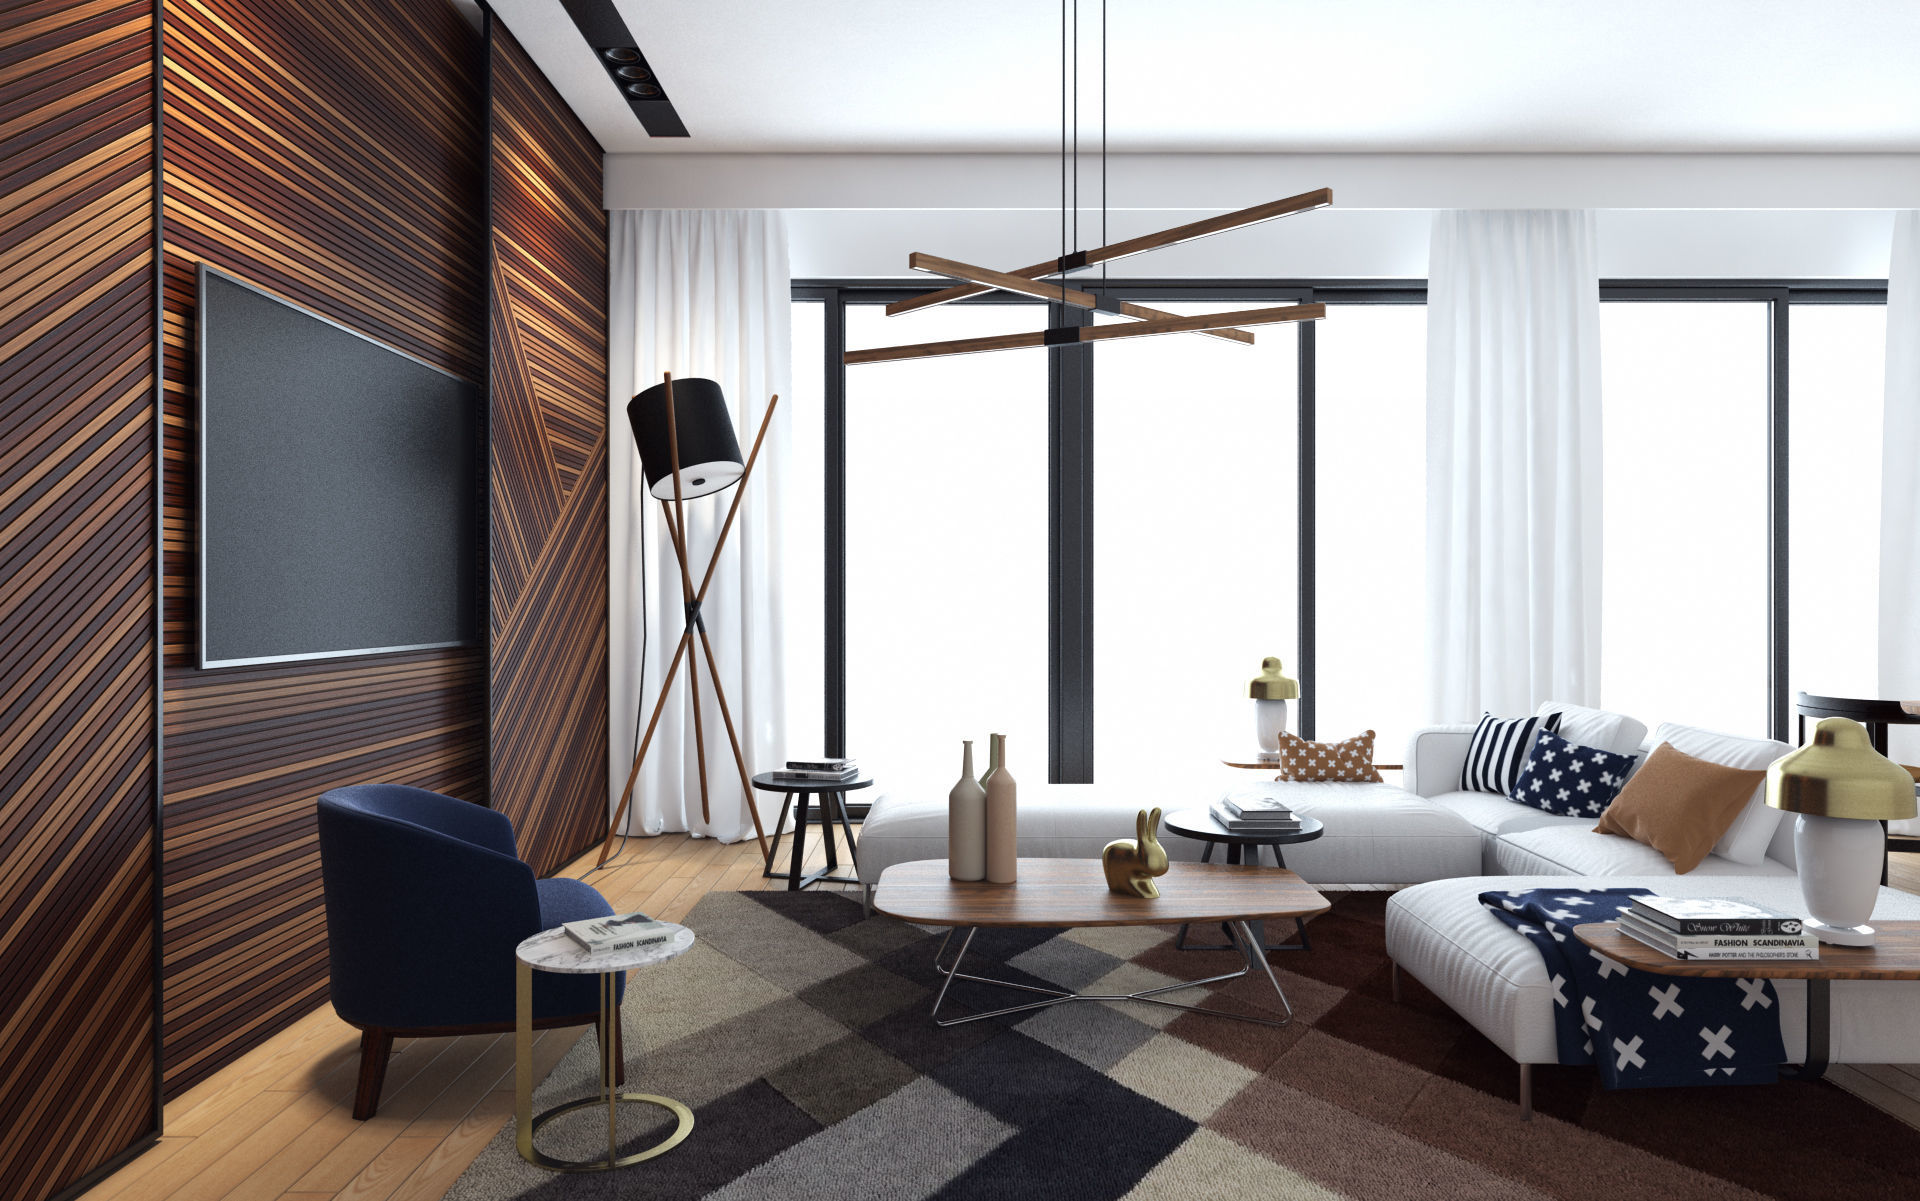 The Inspire Living Room